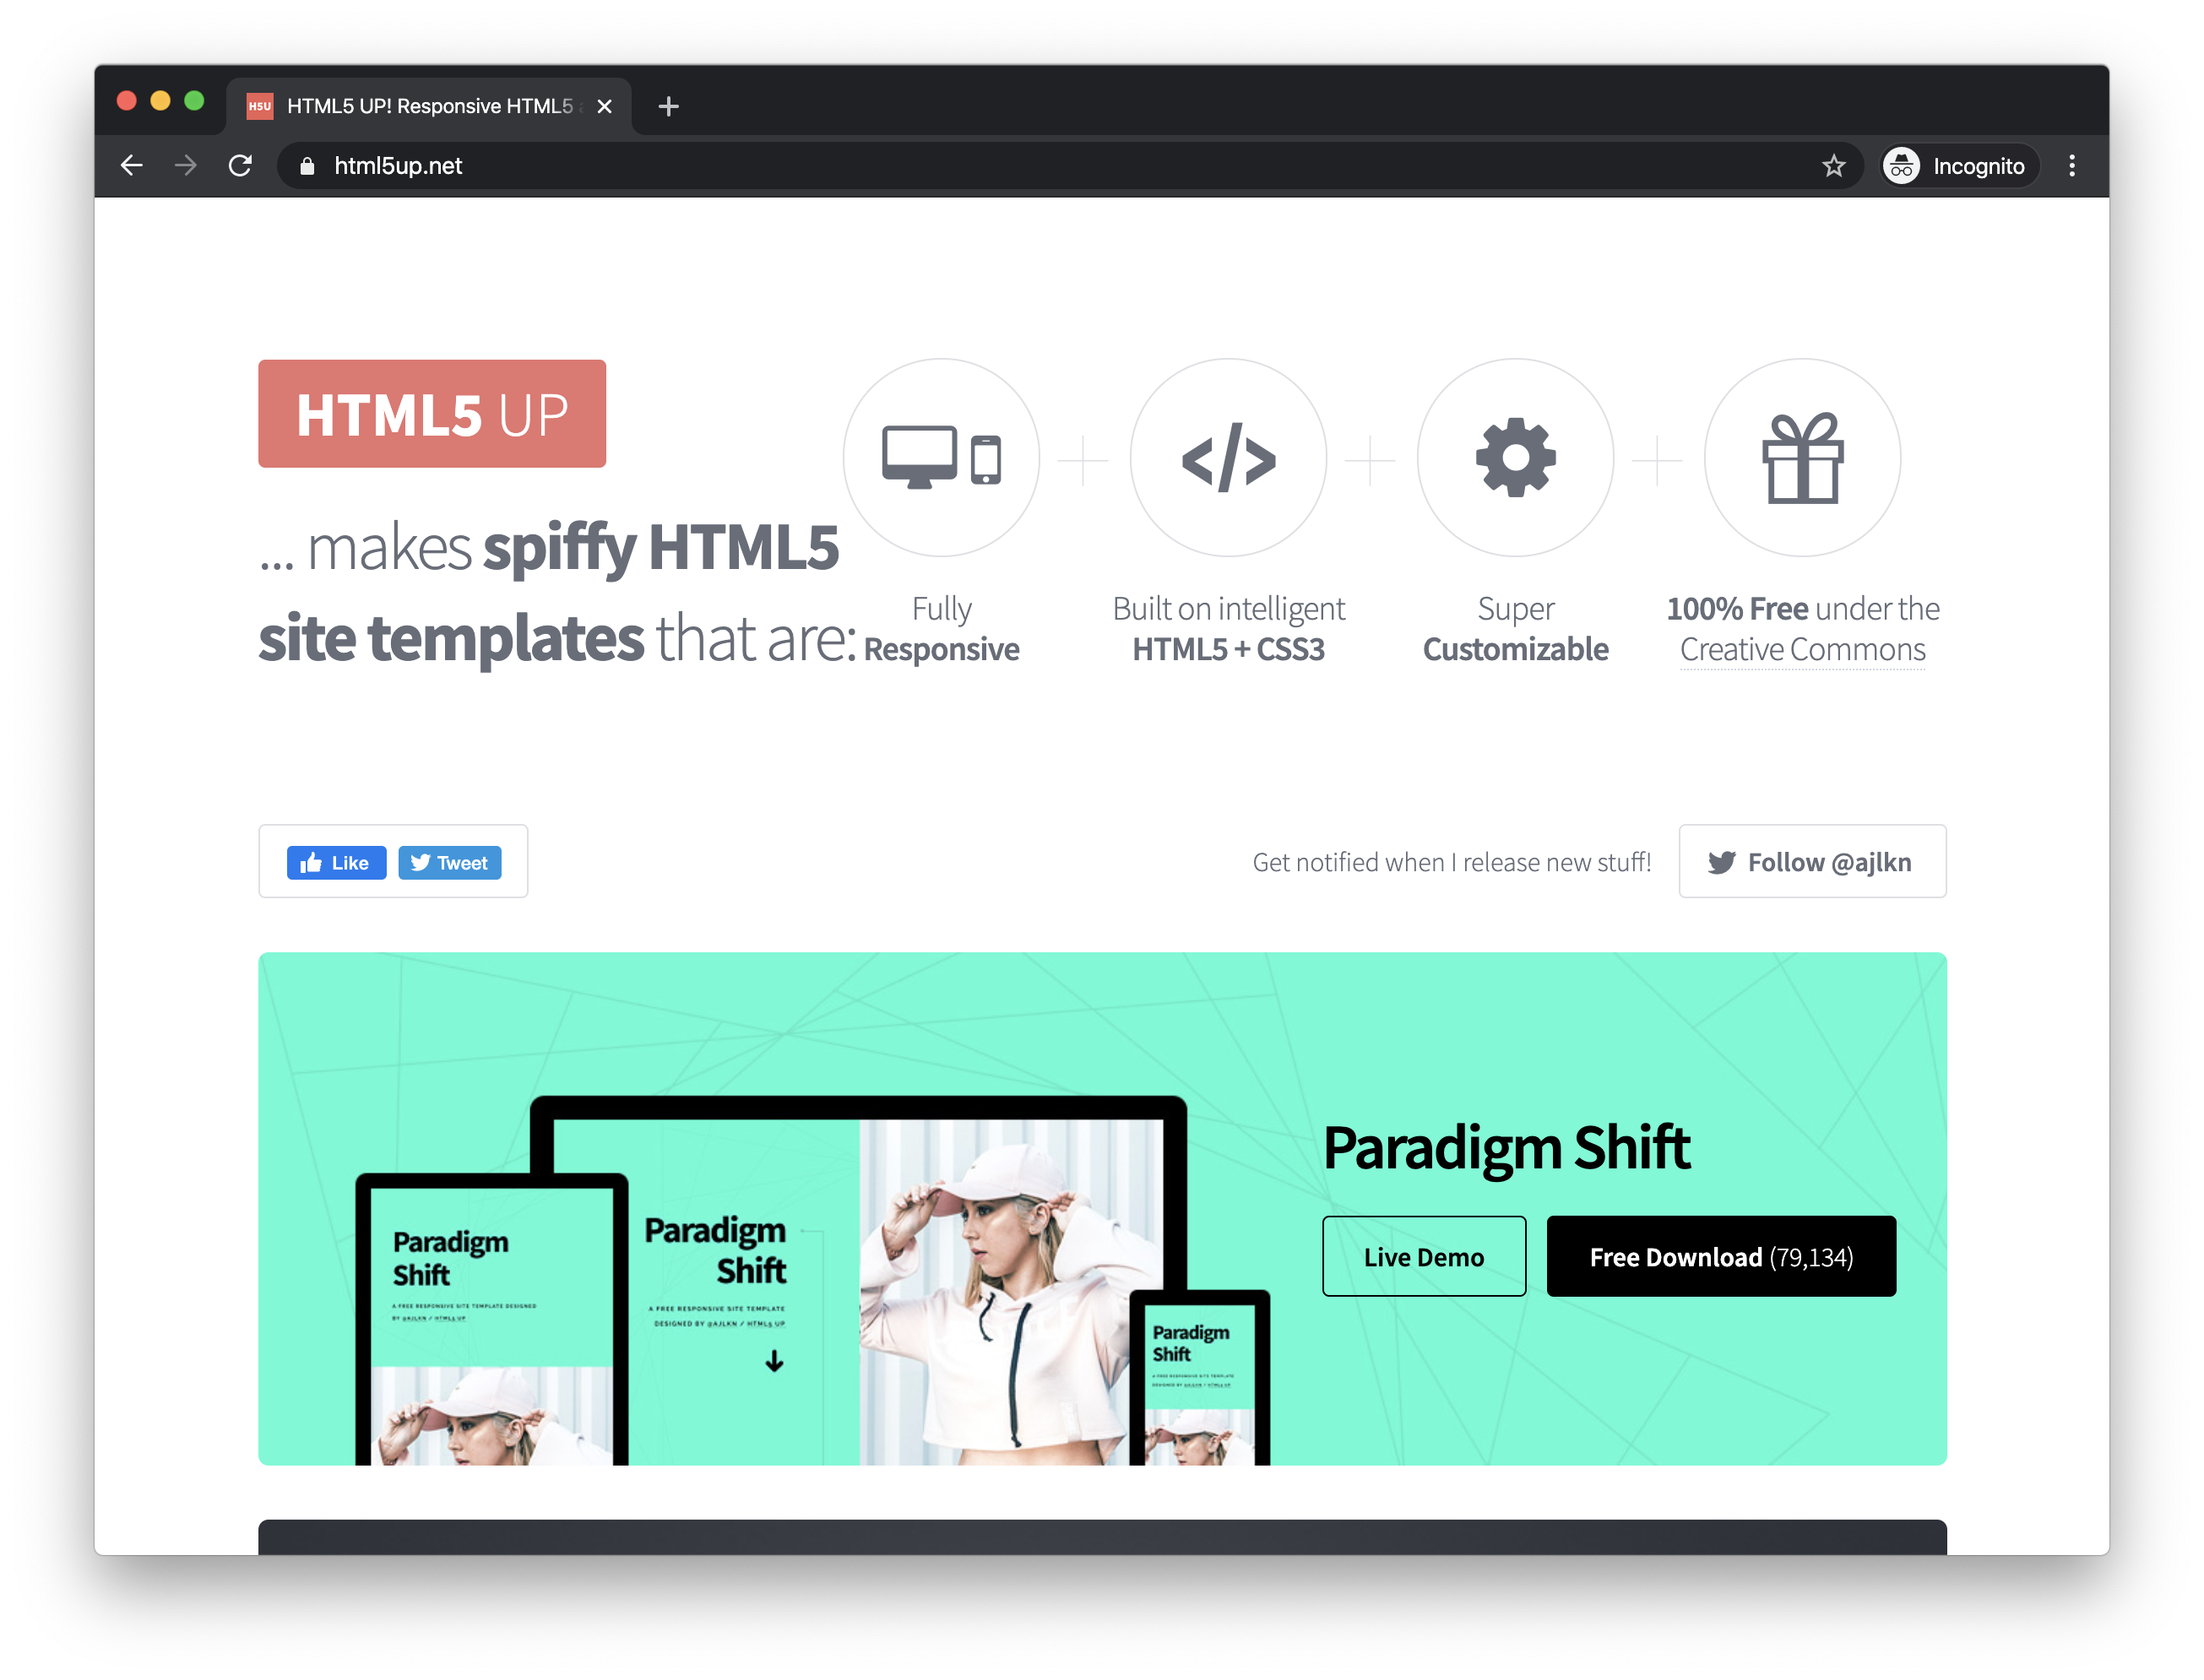 The HTML5 UP homepage